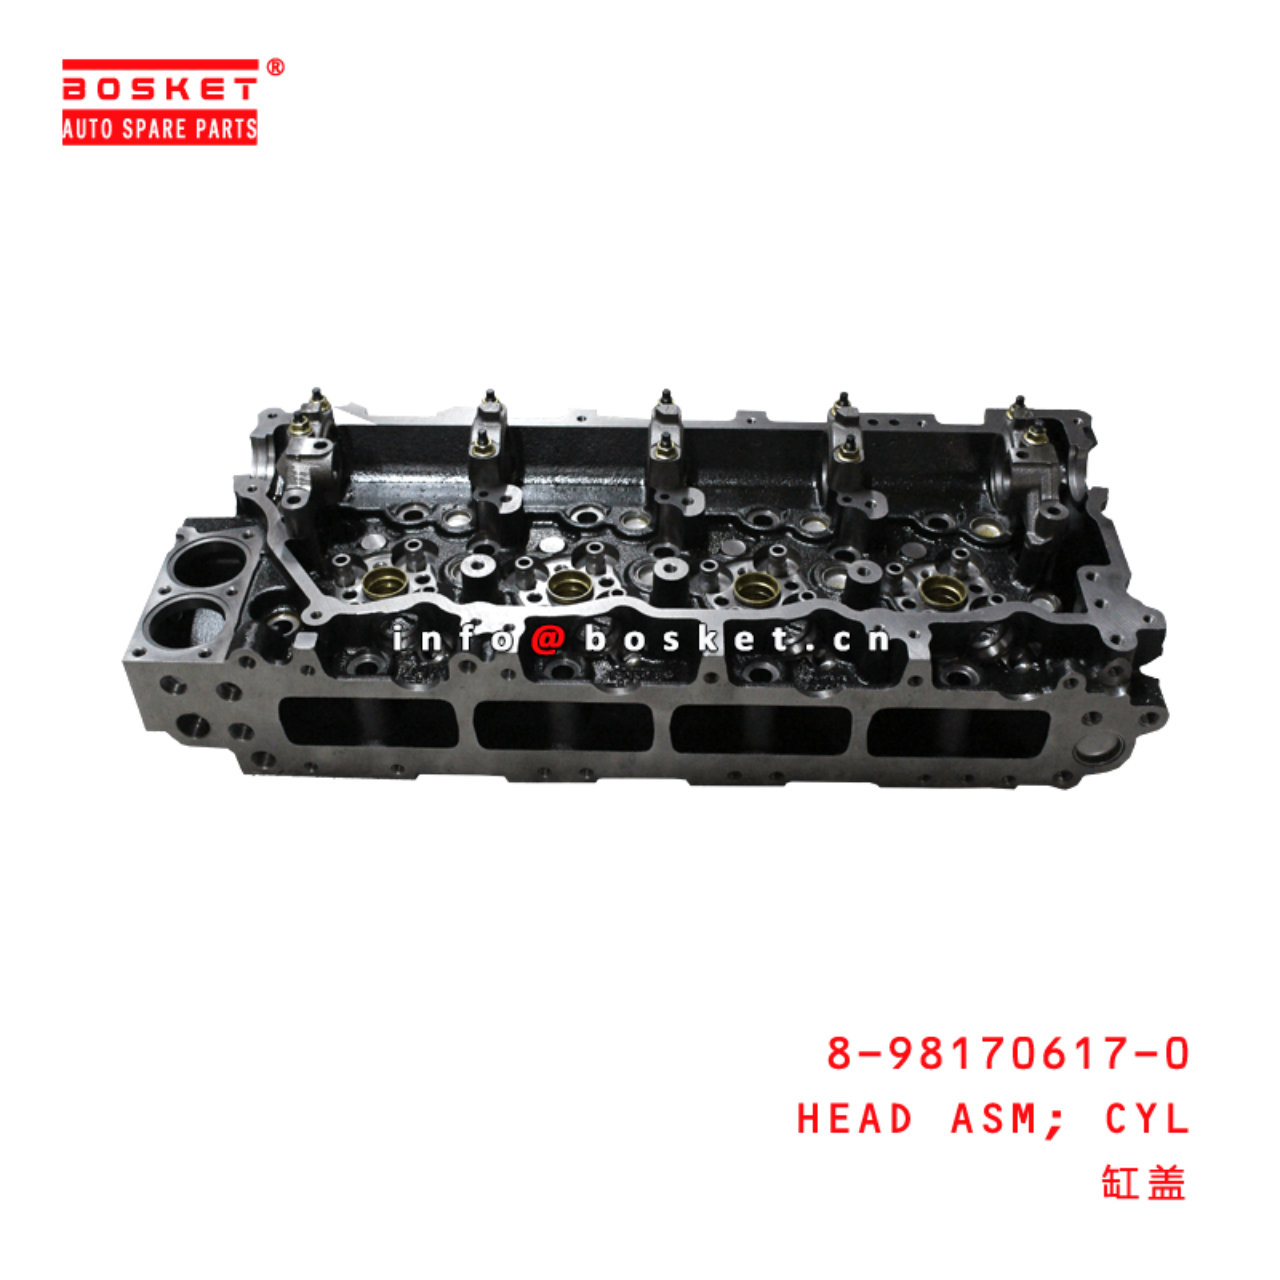 8-98170617-0 Cylinder Head Assembly 8981706170 Suitable for ISUZU 700P NPR75 NQR75 4HK1T